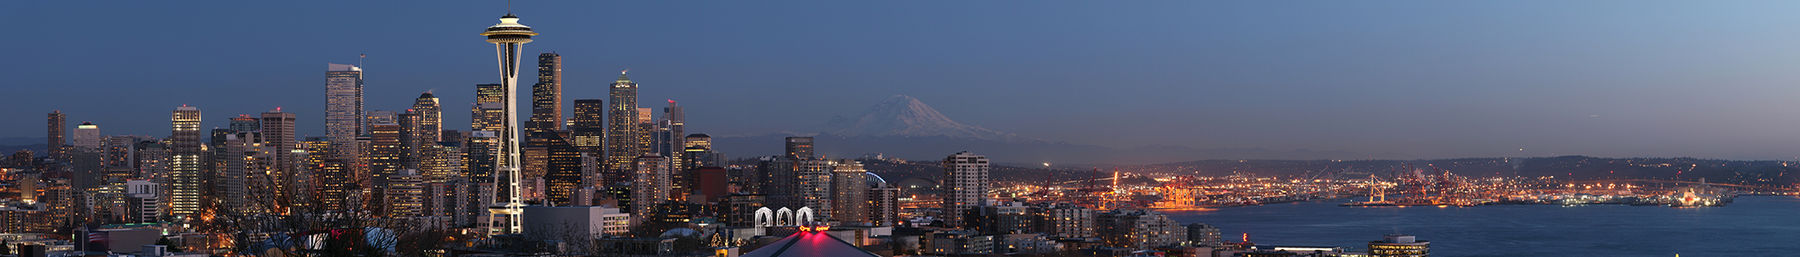 The Seattle skyline at dusk with Mt Rainier in the distance